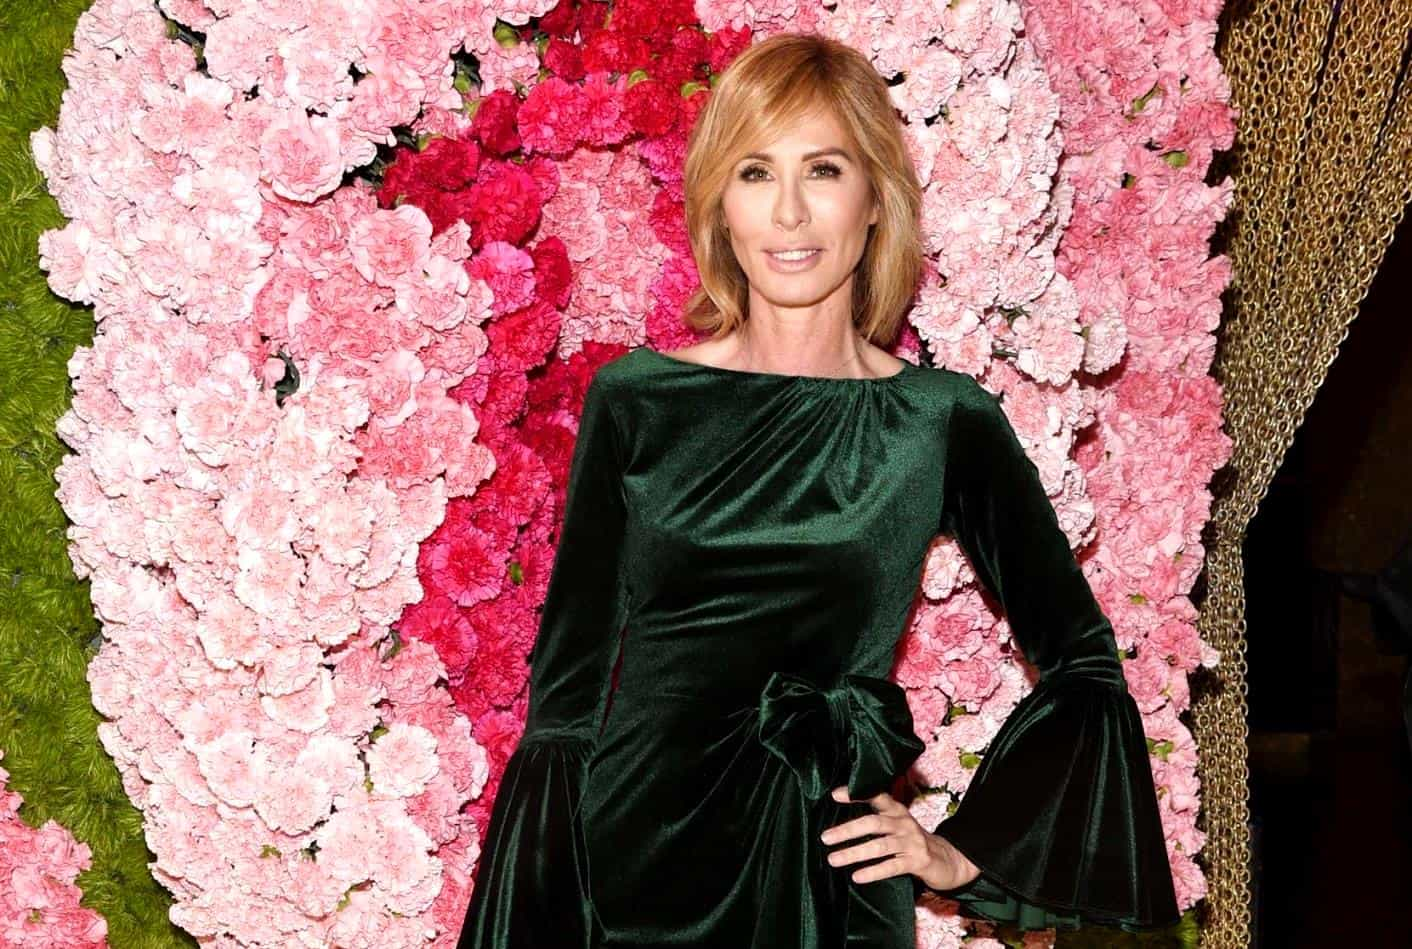 RHONY's Carole Radziwill Posts Racy Swimsuit Pics and Gets Slammed by Fan